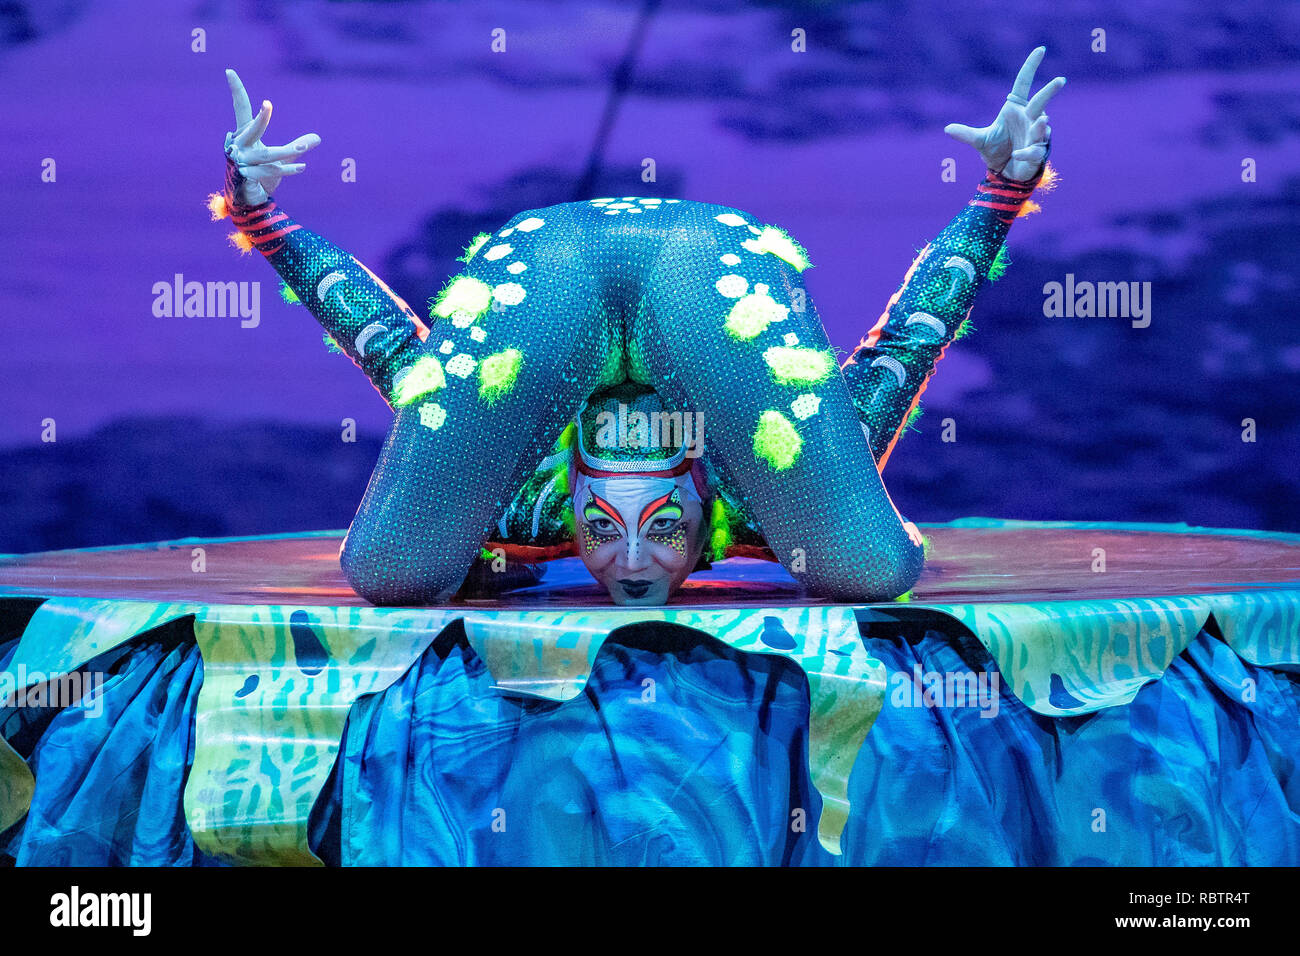 London, England. 11th January 201, Cast members of Cirque Du Soleil perform in 'Cirque Du Soleil's Totem' dress rehearsal at The Royal Albert Hall ,England, © Jason Richardson / Alamy Live News - Stock Image